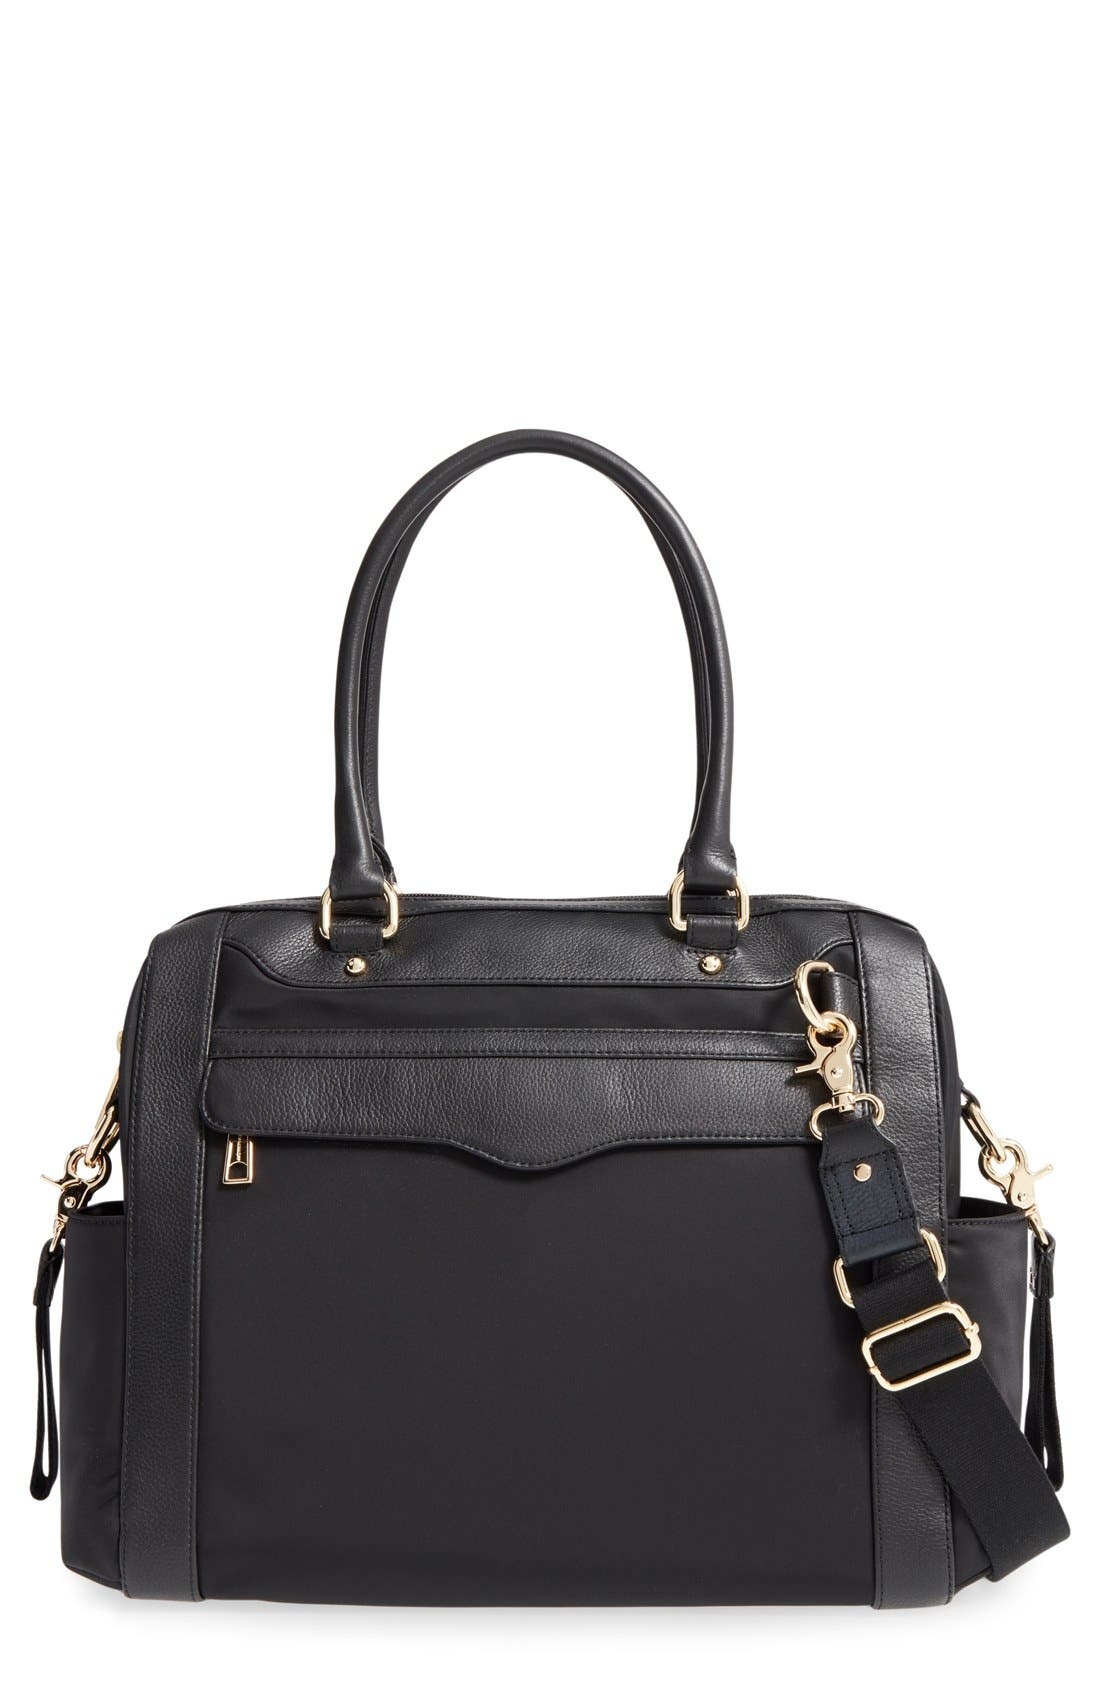 Main Image - Rebecca Minkoff 'Knocked Up' Leather Diaper Bag